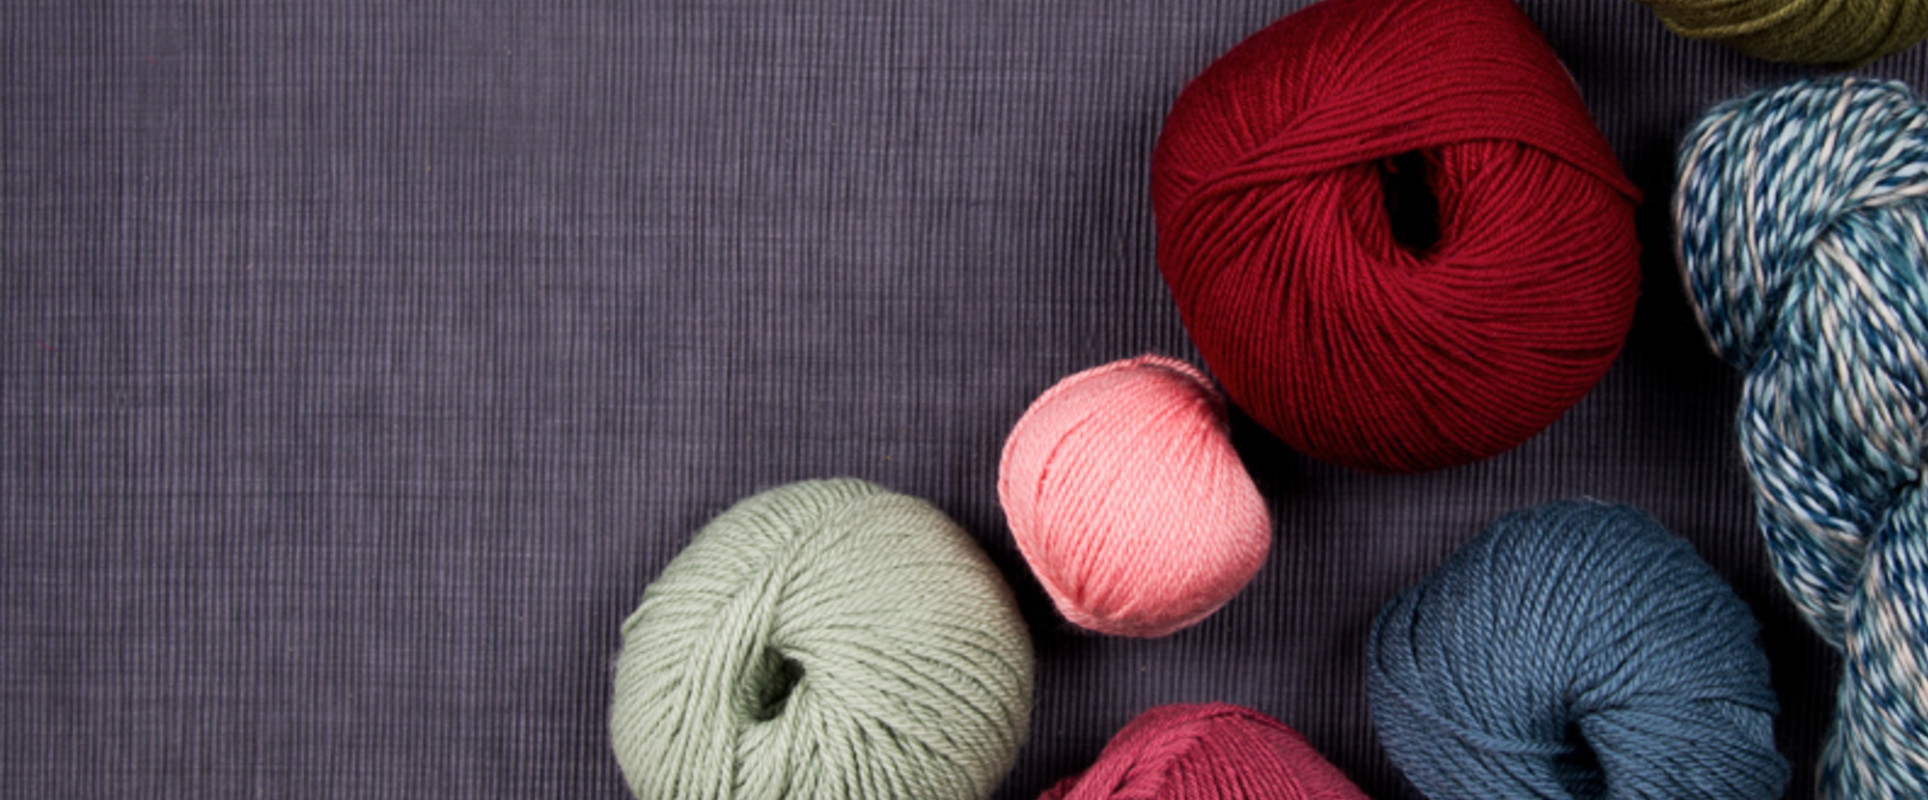 How to substitute a yarn's fiber | LoveCrafts, LoveKnitting's New Home